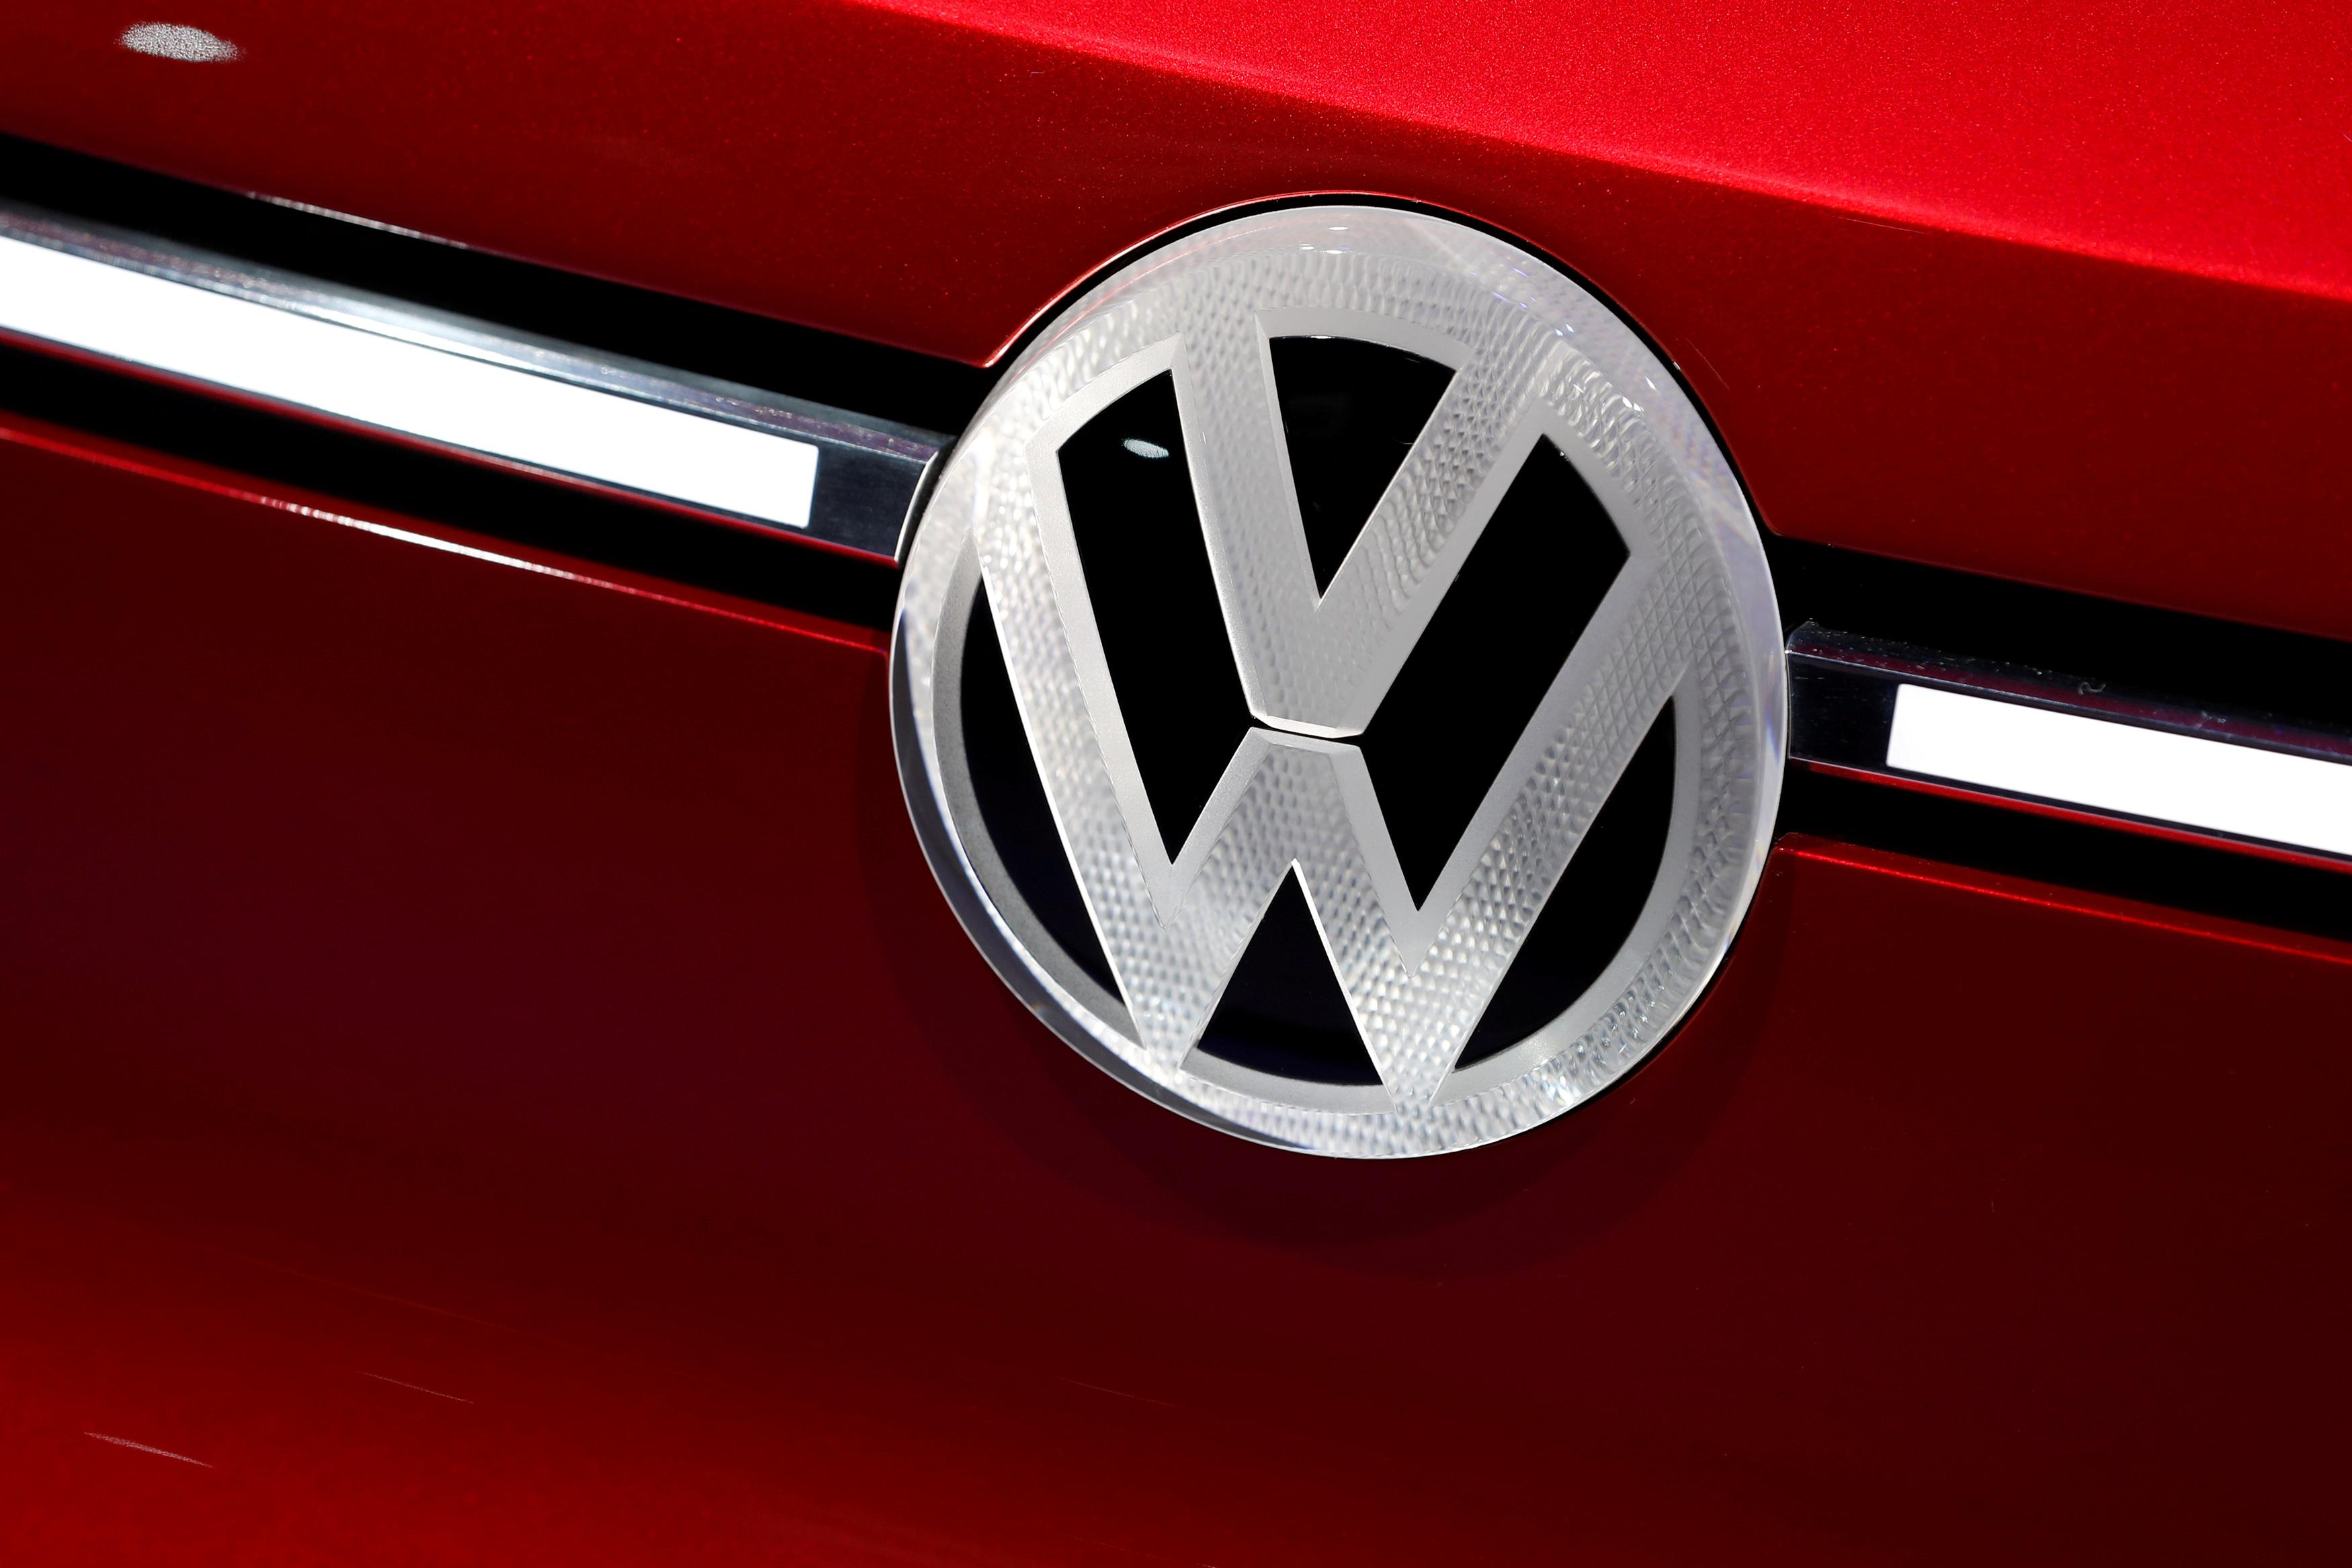 VW, Ford to reveal deeper alliance next week: sources